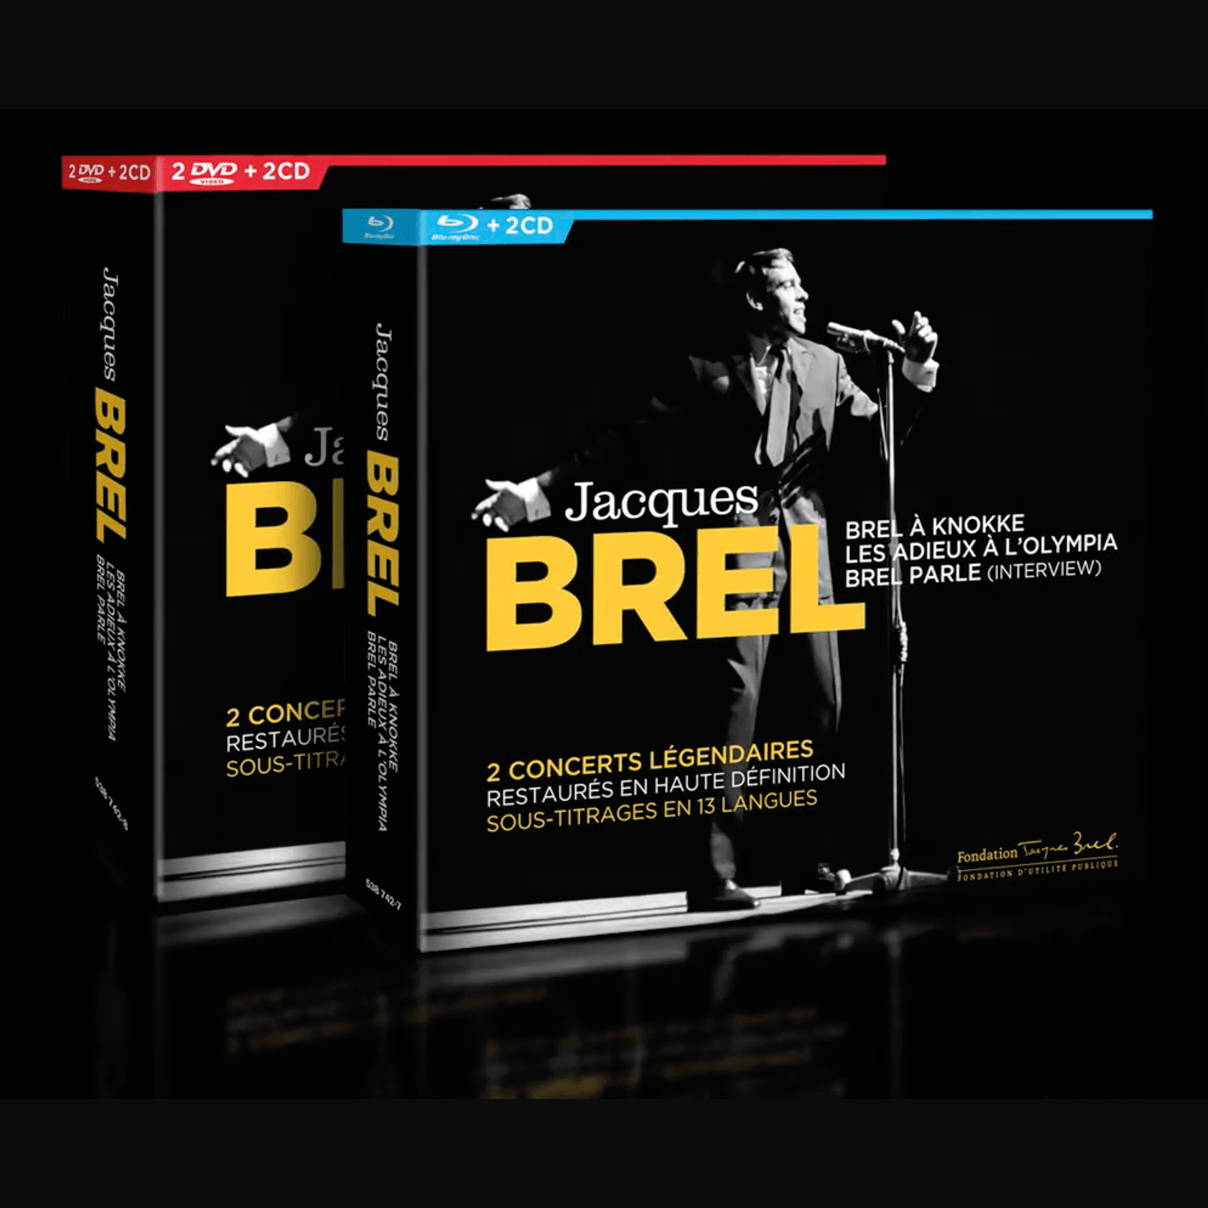 Jacques Brel en concert et en interview